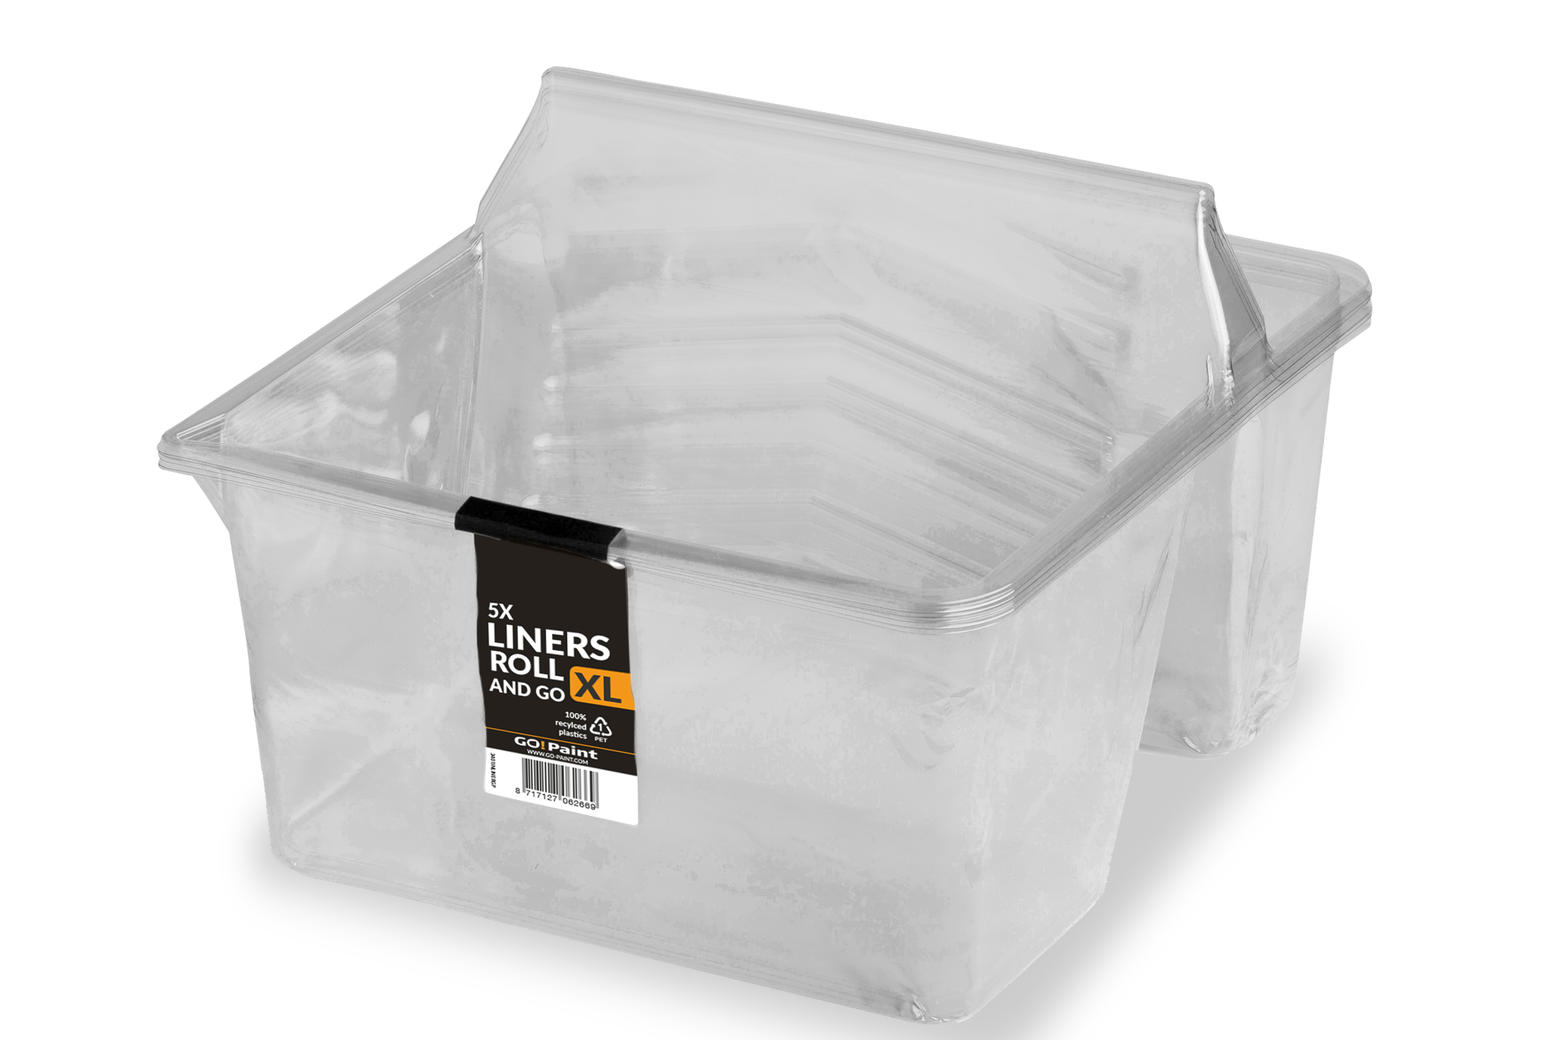 The special disposable liners mean you can use the tray again and again.